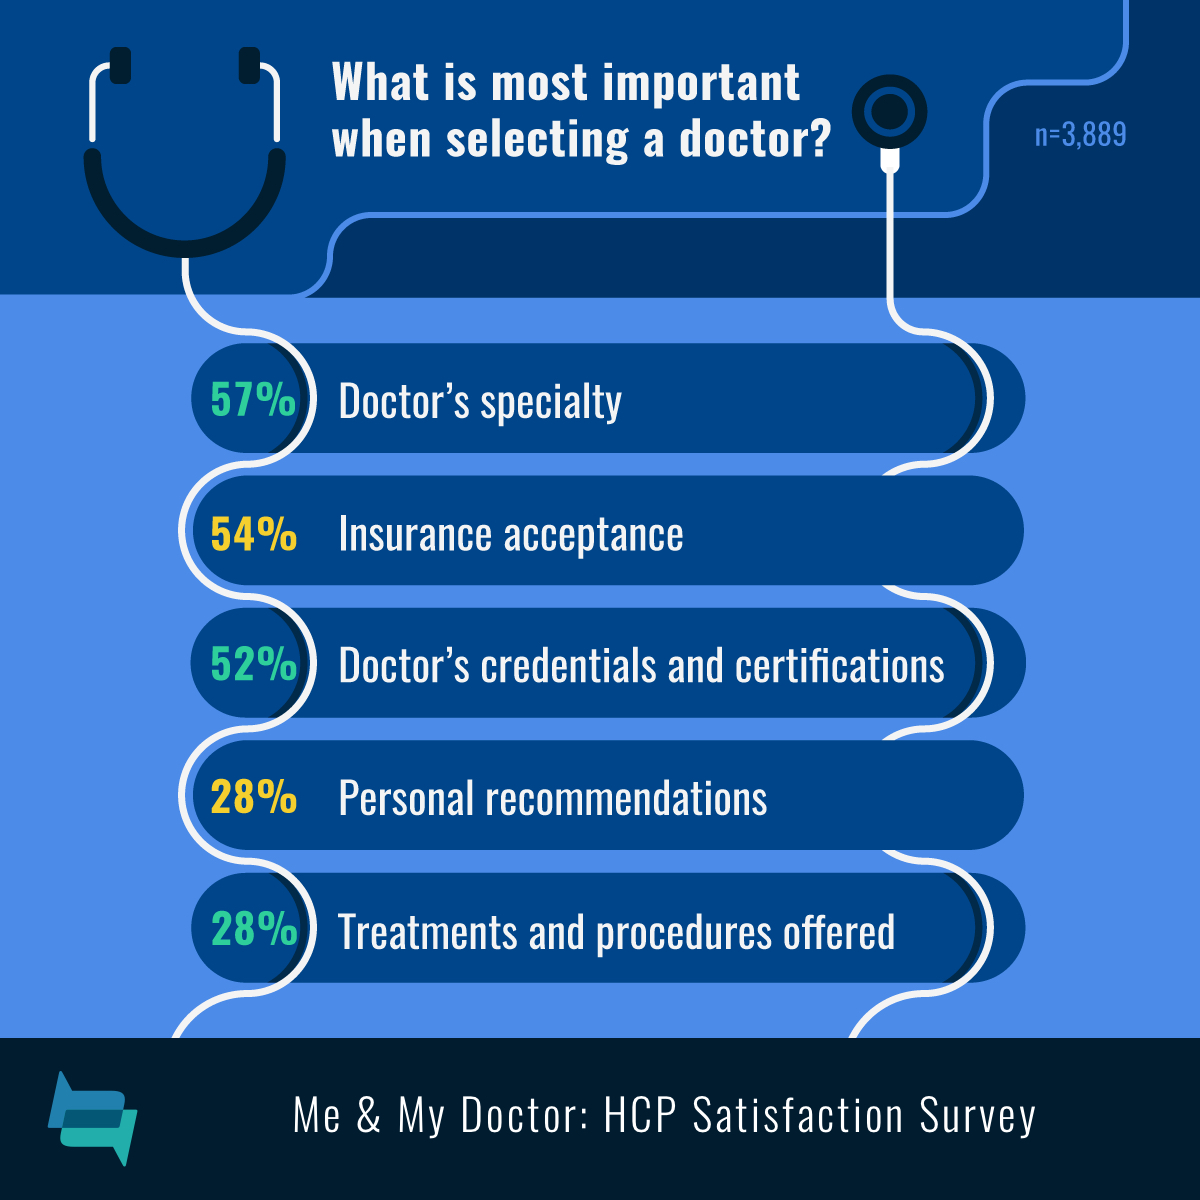 Specialty (57%), insurance (54%), credentials (52%), recommendation (28%), treatments and procedures (28%) affect doctor selection.